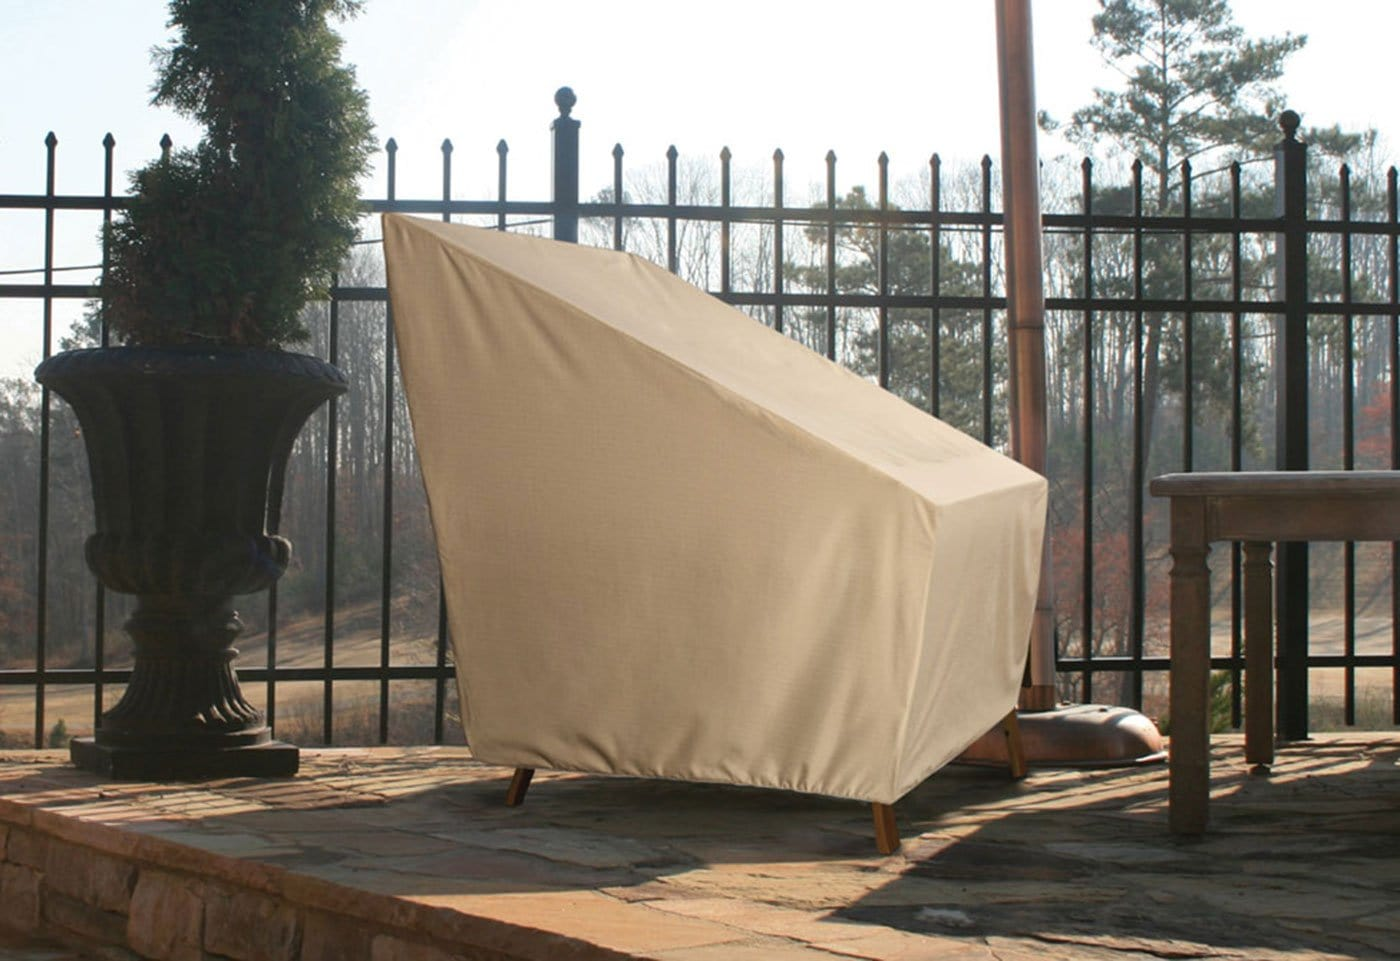 Patio Armor Back Patio Chair Outdoor Furniture Cover - Taupe